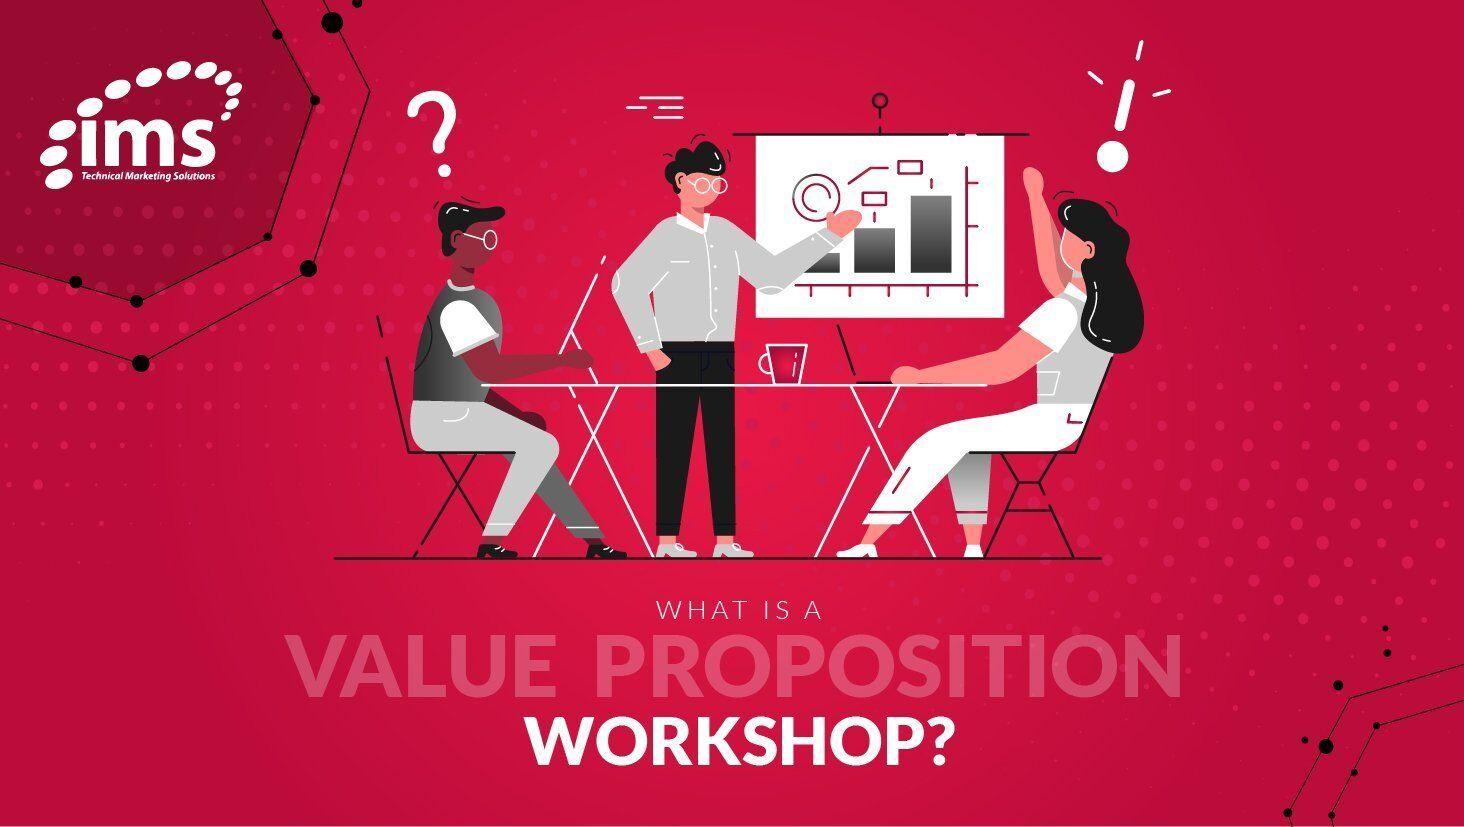 What is a value proposition workshop?